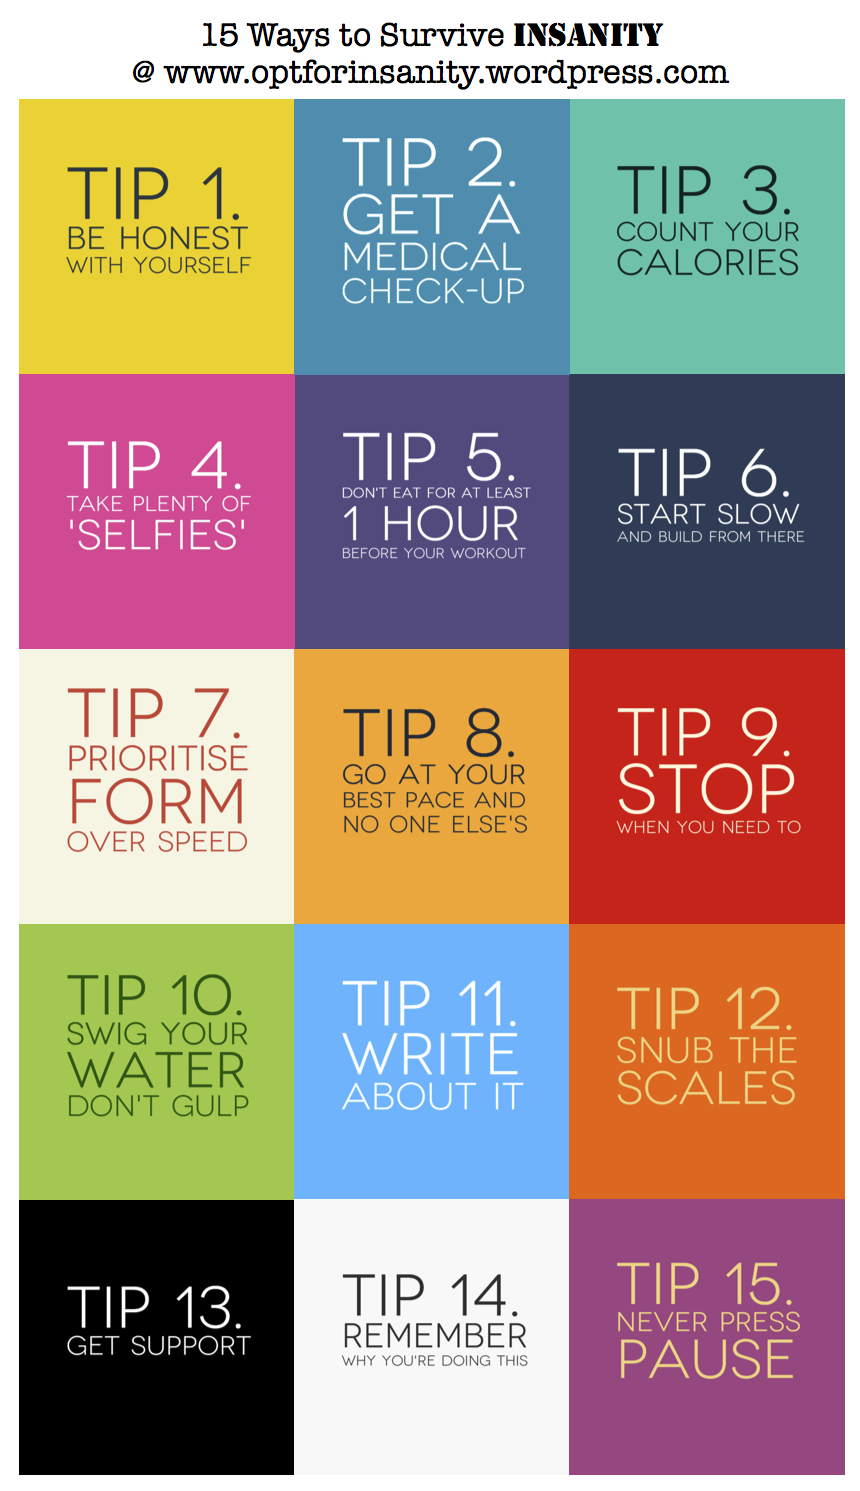 12 Ways to Stay Motivated When You Have a Lot of Weight to Lose 12 Ways to Stay Motivated When You Have a Lot of Weight to Lose new foto